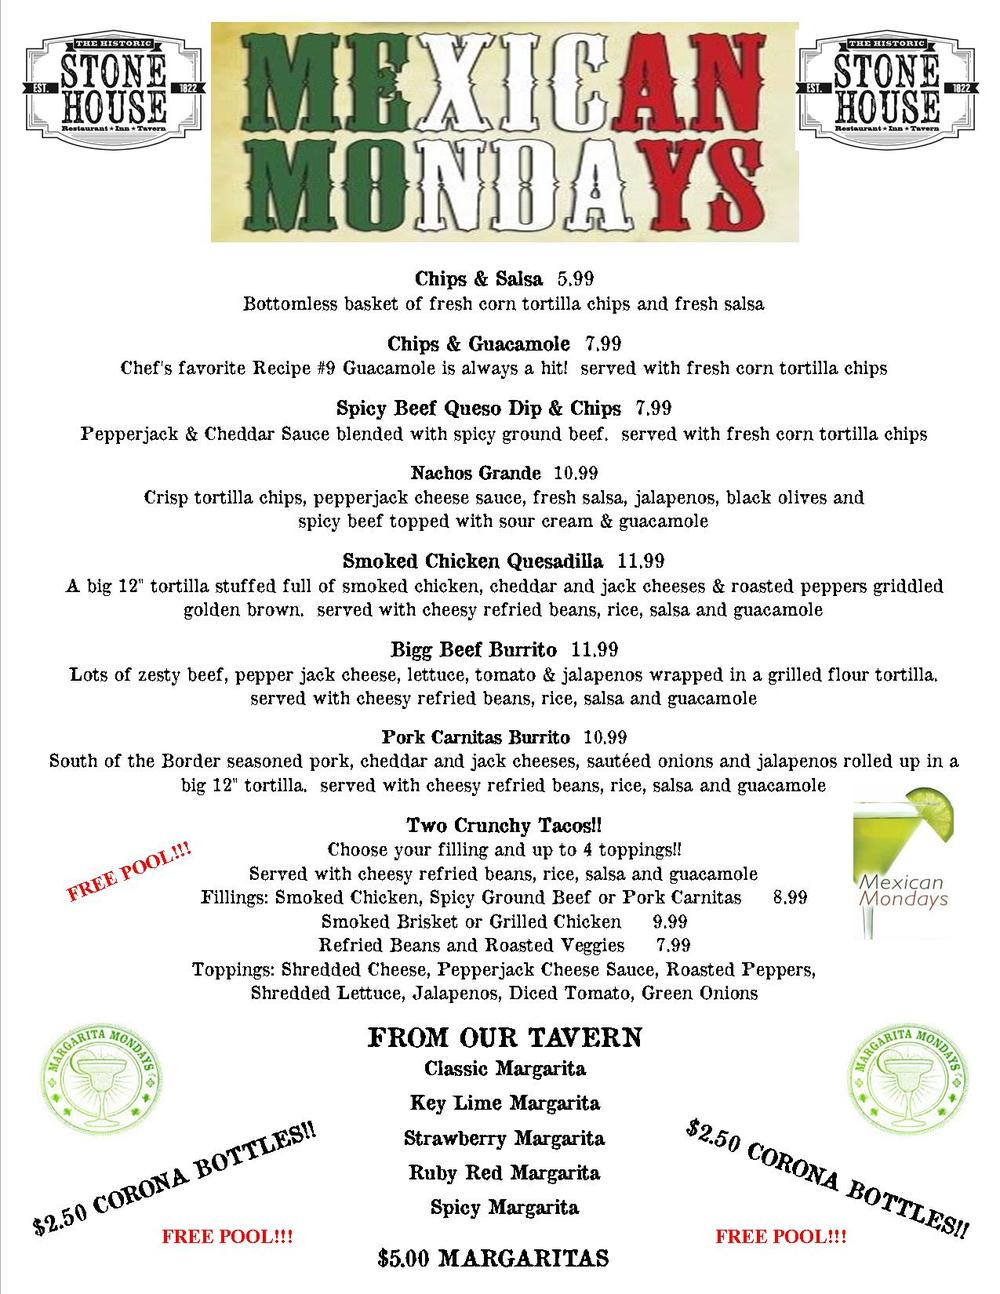 Mexican Monday Menu 11-18-15 (1).jpg